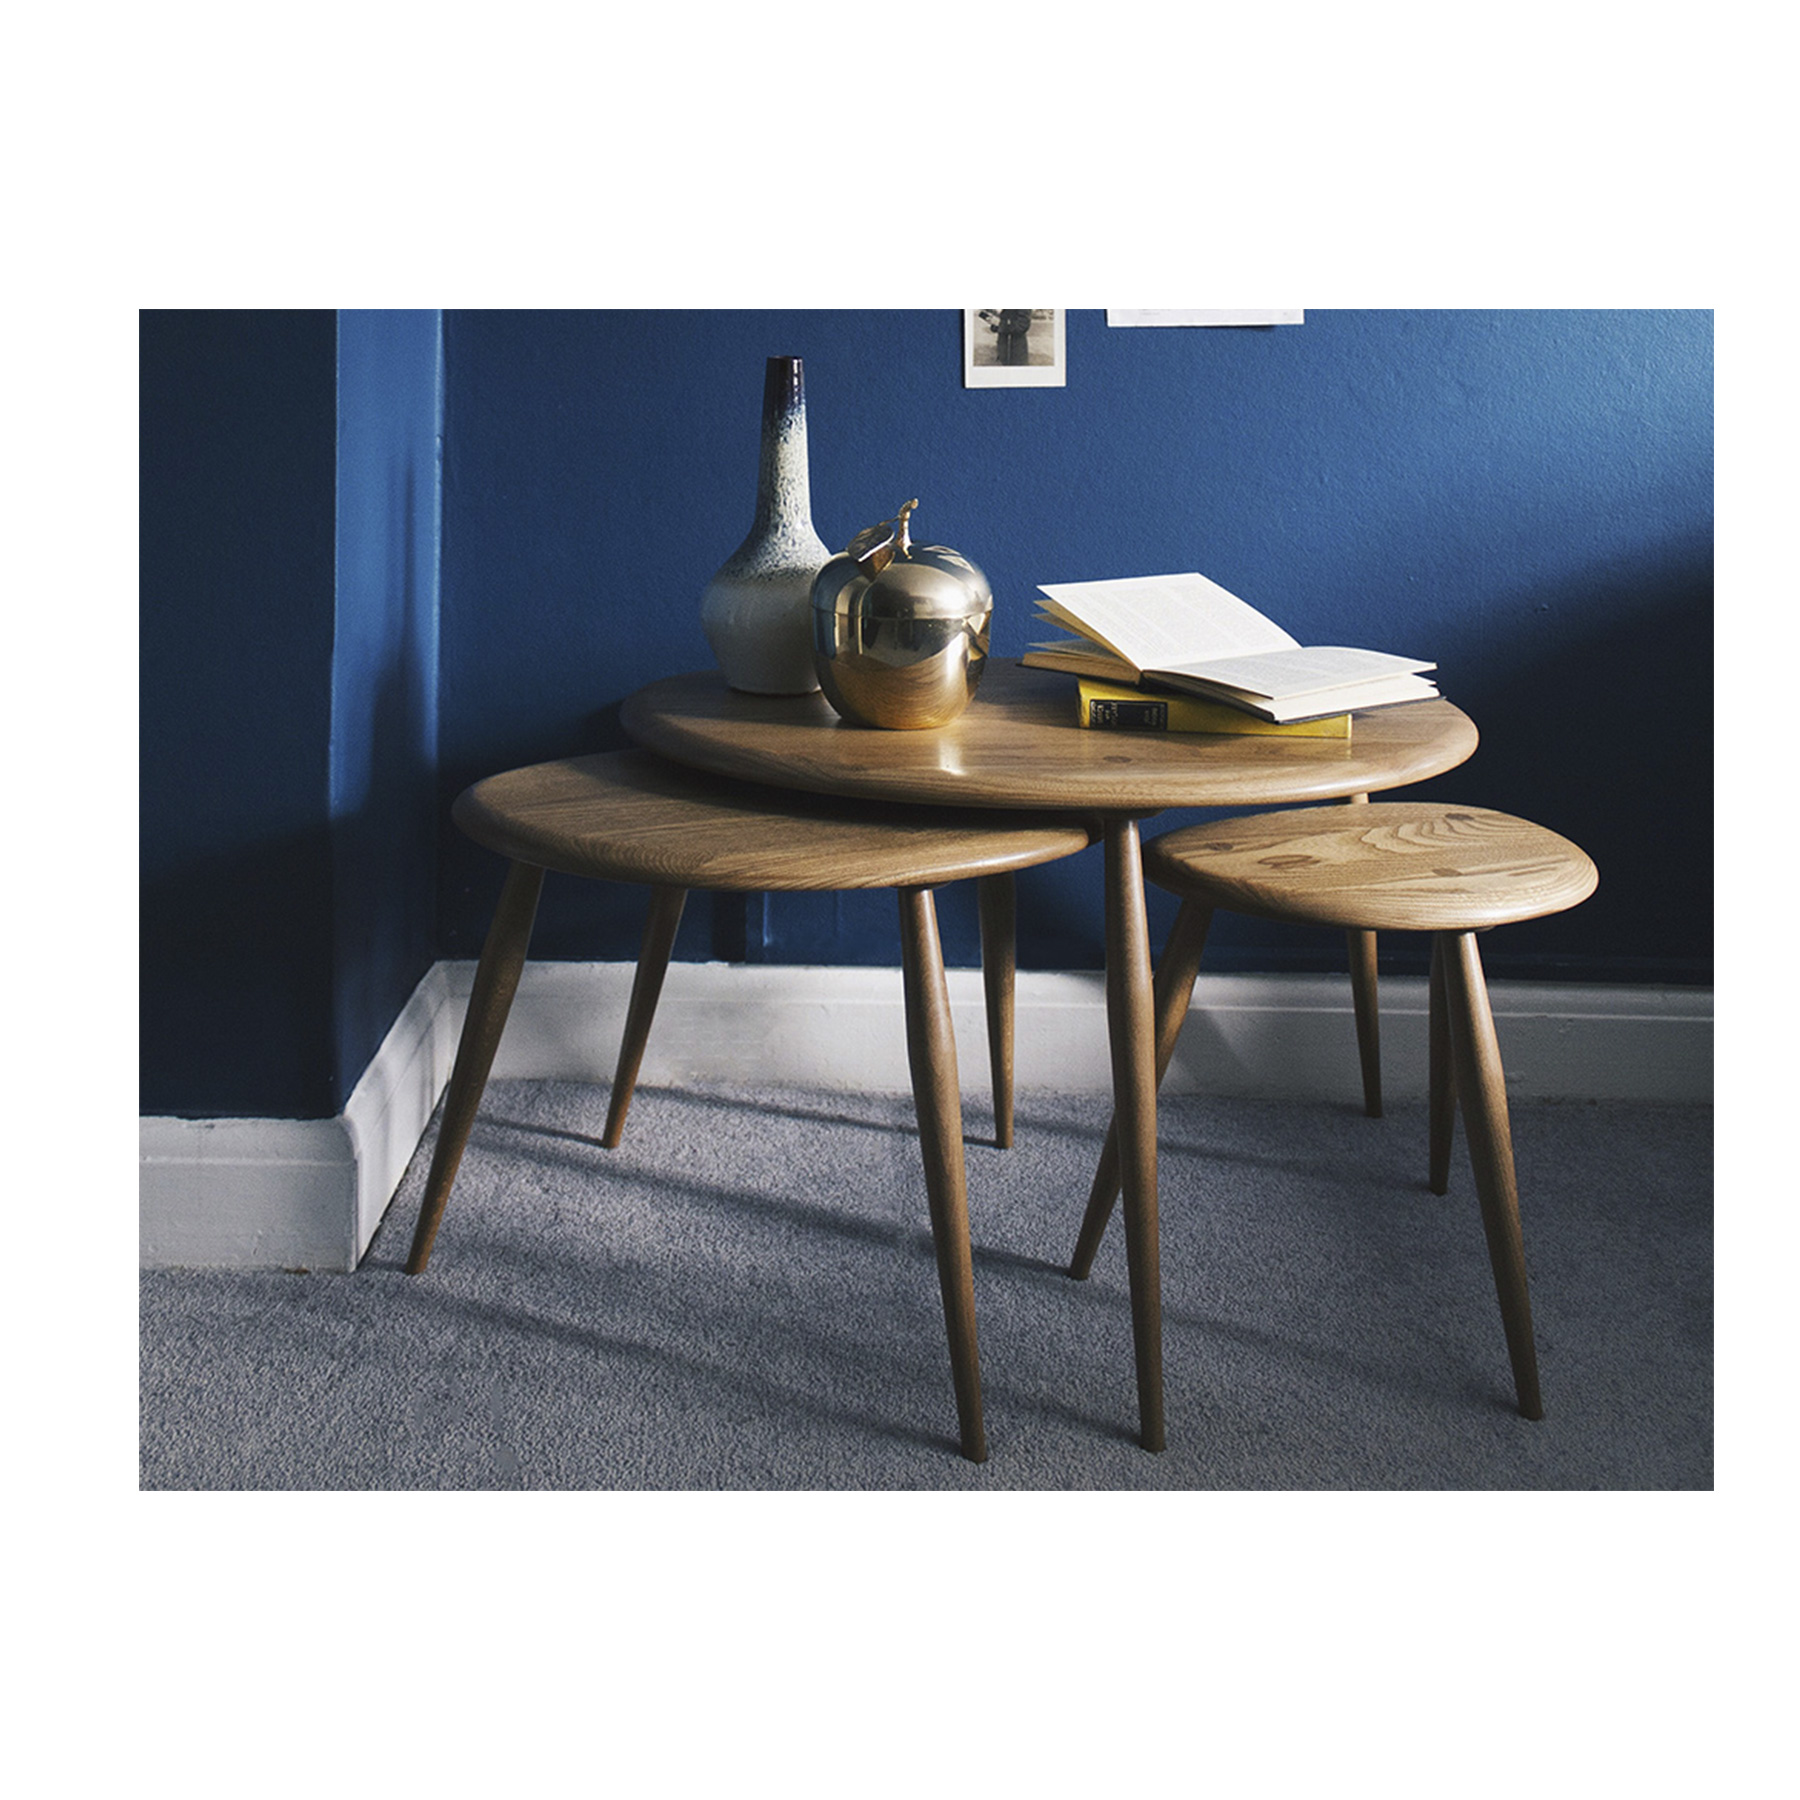 """Originals Nest Of Tables - <p>Offering maximum flexibility, this classic piece of furniture comprises three individual tables where the smaller tables slot neatly underneath the large one to save space when not in use. The fluid curves and tapered table legs offer a simple and distinctively ercol design.<br /> This furniture will be finished in your choice of a selection of lacquer finishes or in a choice of our painted colour finishes, which protect the timber as well as fitting in with your style and decor. The 354 nest is affectionately known as the """"pebble"""" nest owing to the shape of the table tops.</p>  